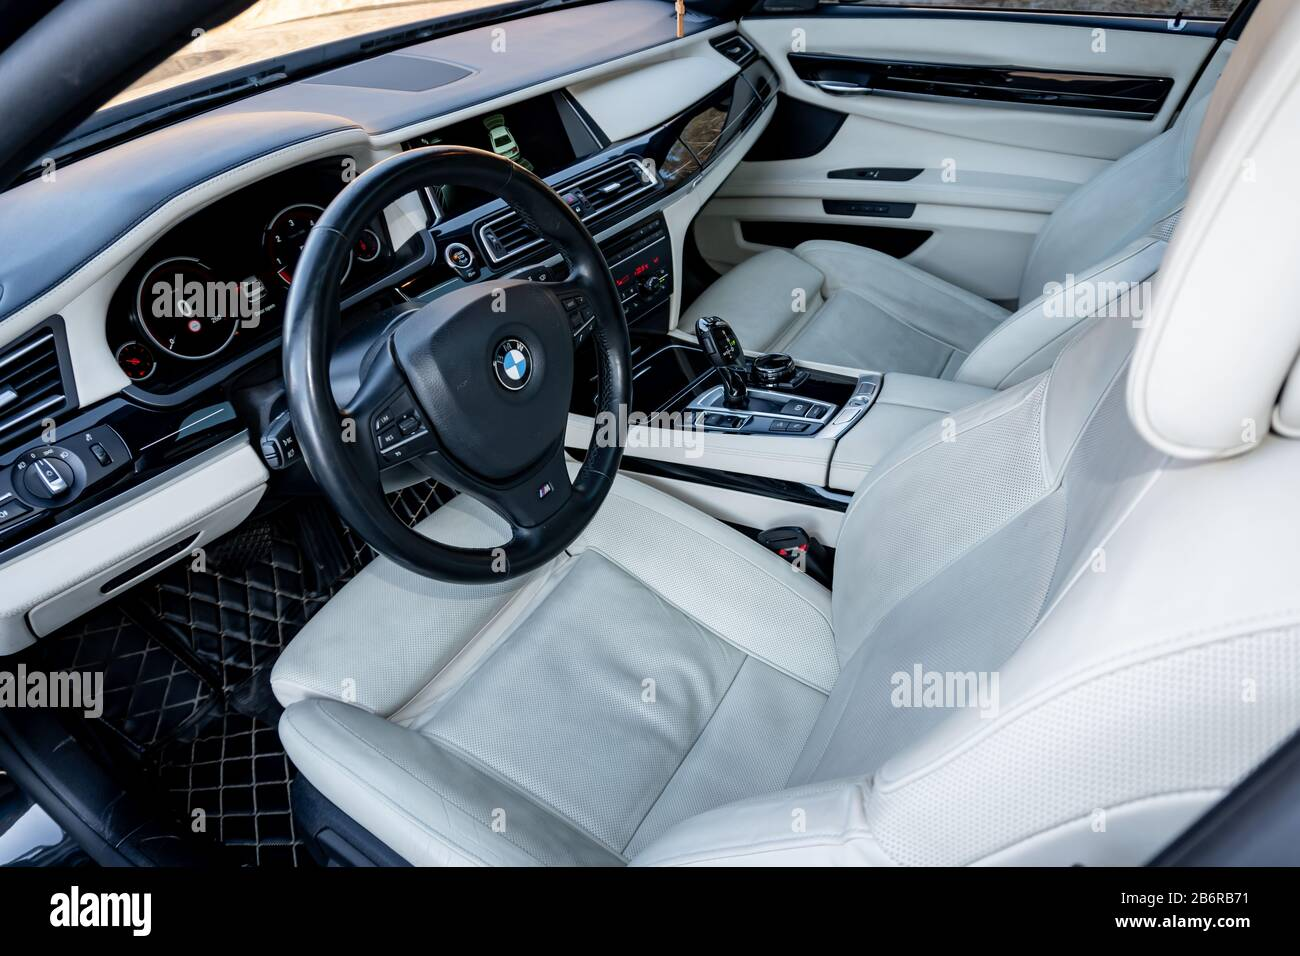 White Leather Interior Seats And Dashboard Inside A Luxurious Bmw 750d Black Limousine With 381hp Hi Tech Comfort Equipment M Package And Individual Stock Photo Alamy